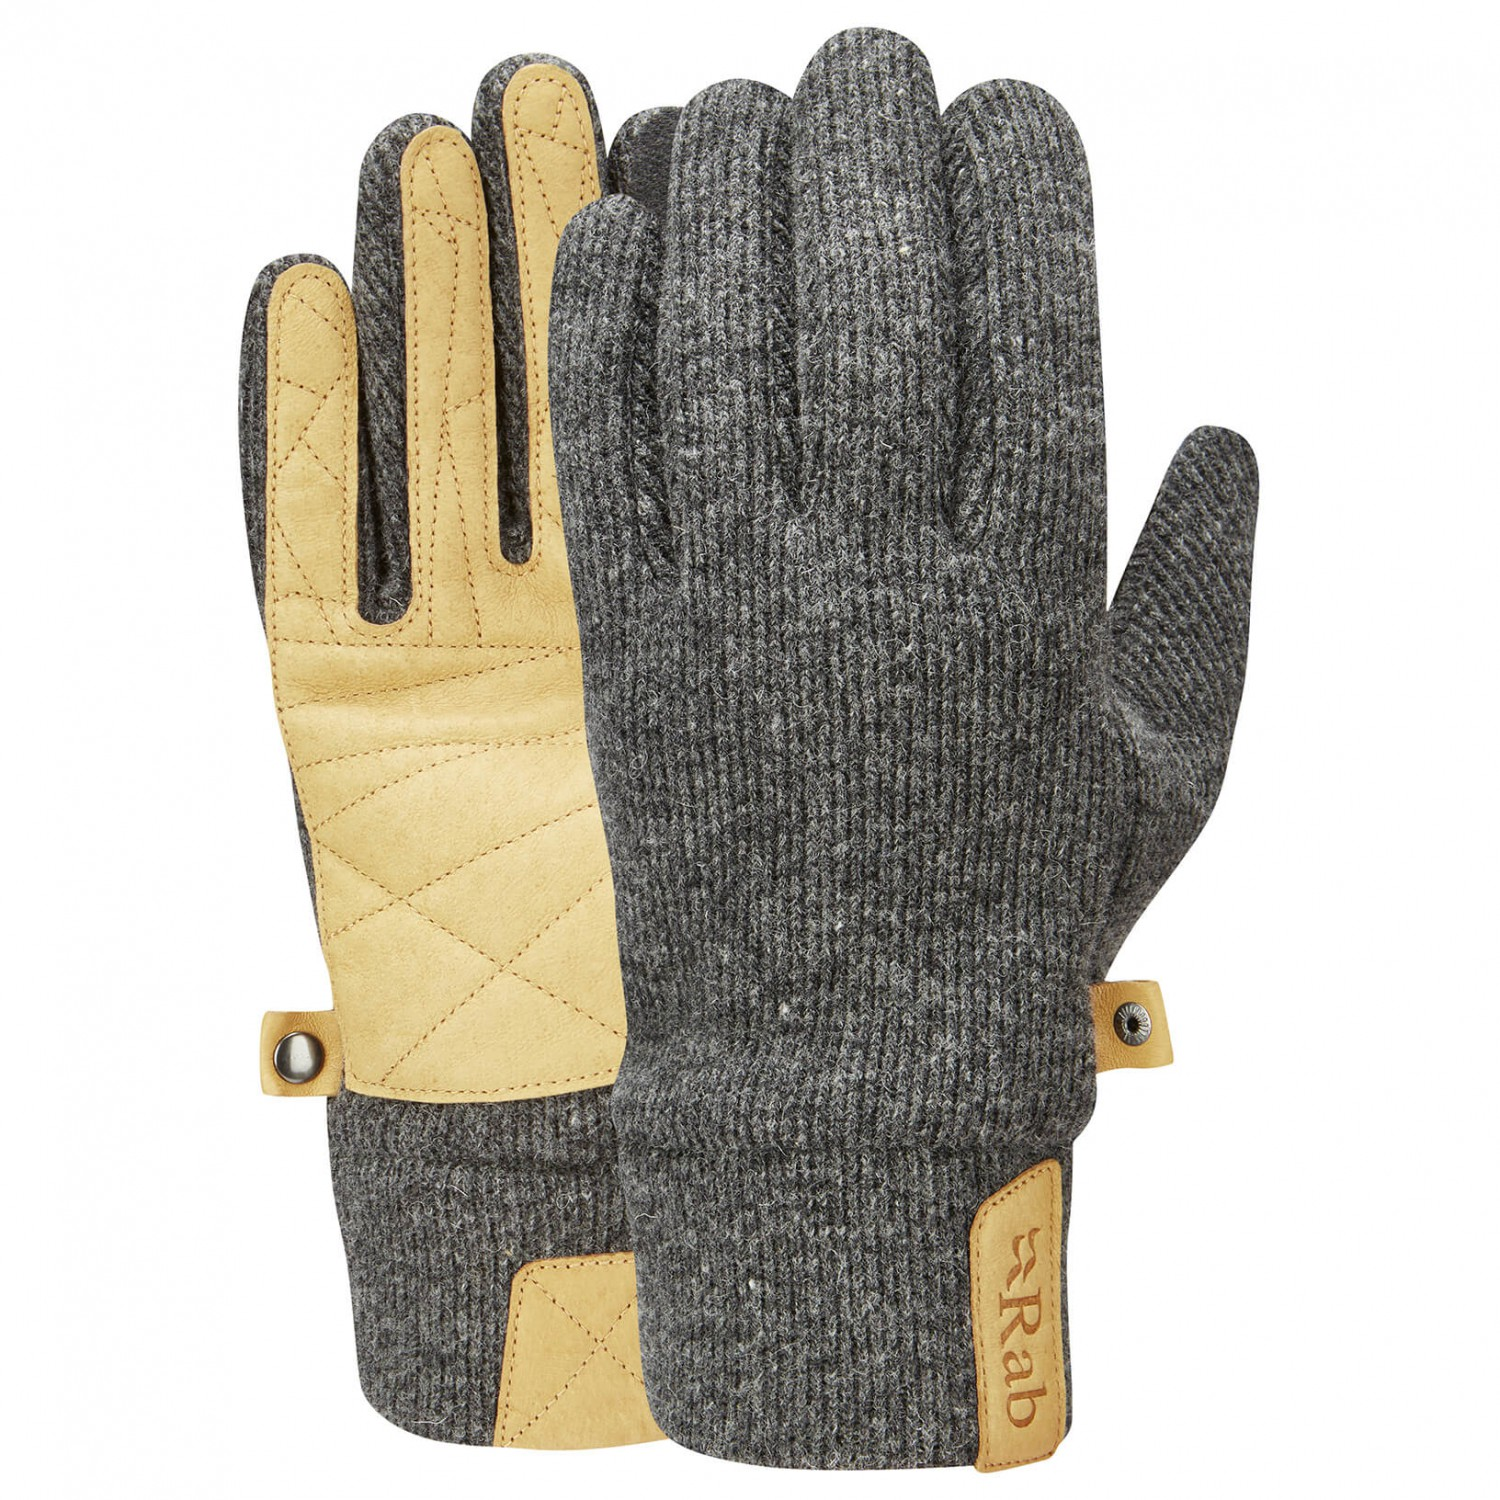 Rab Ridge Glove Gloves Buy Online Alpinetrek Co Uk